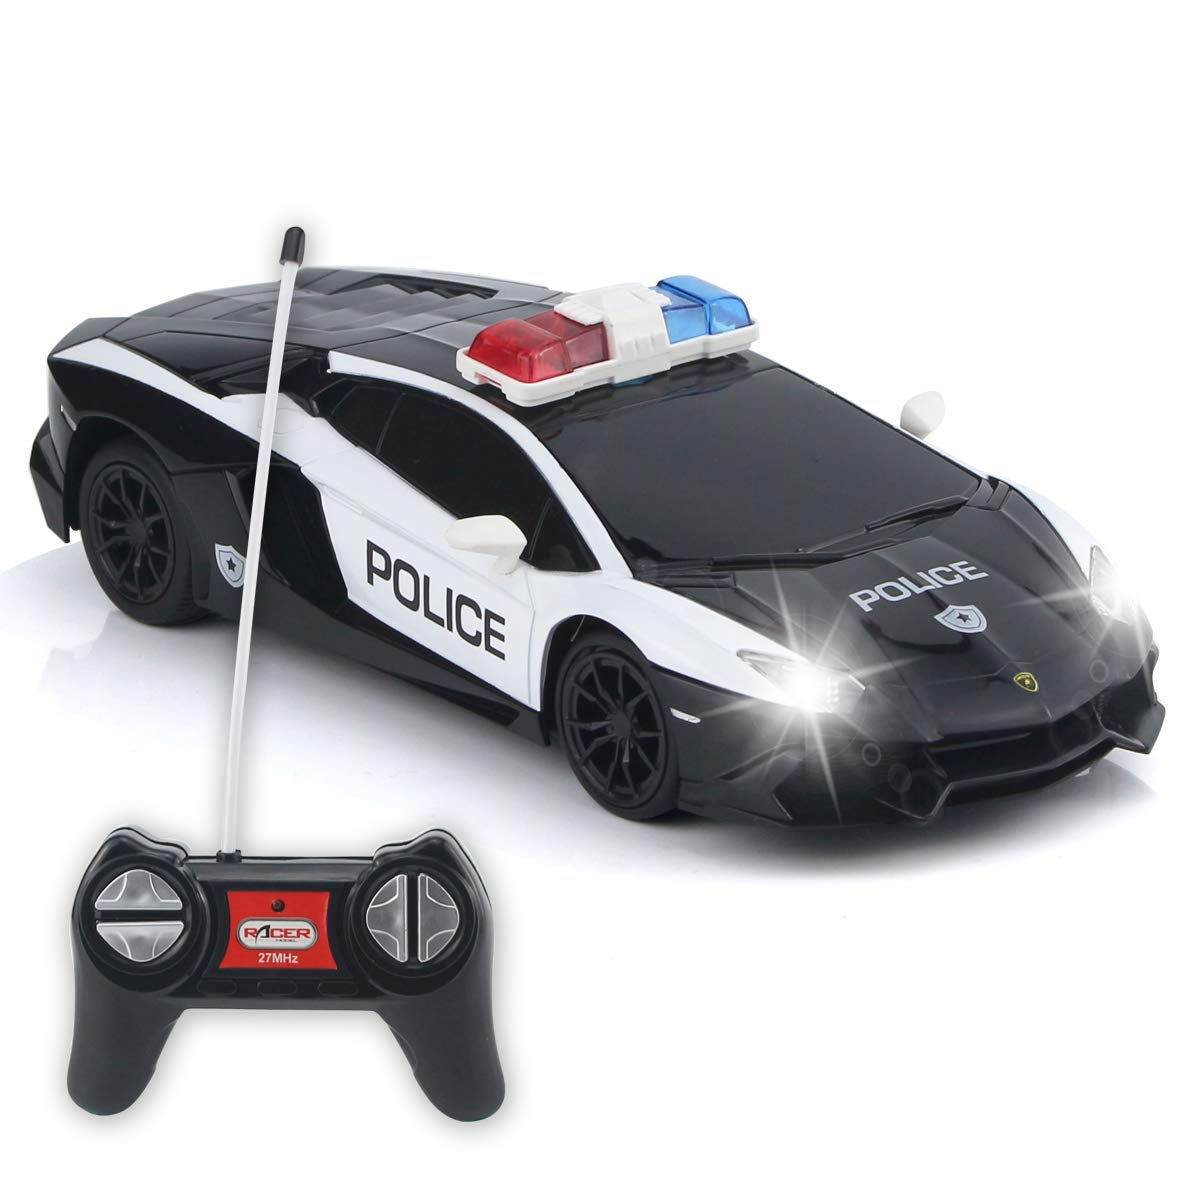 QUN FENG Remote Control Car Authorized by Lamborghini RC Police Car Electric Cop Car Toys for 6 Year Old Boys Gifts